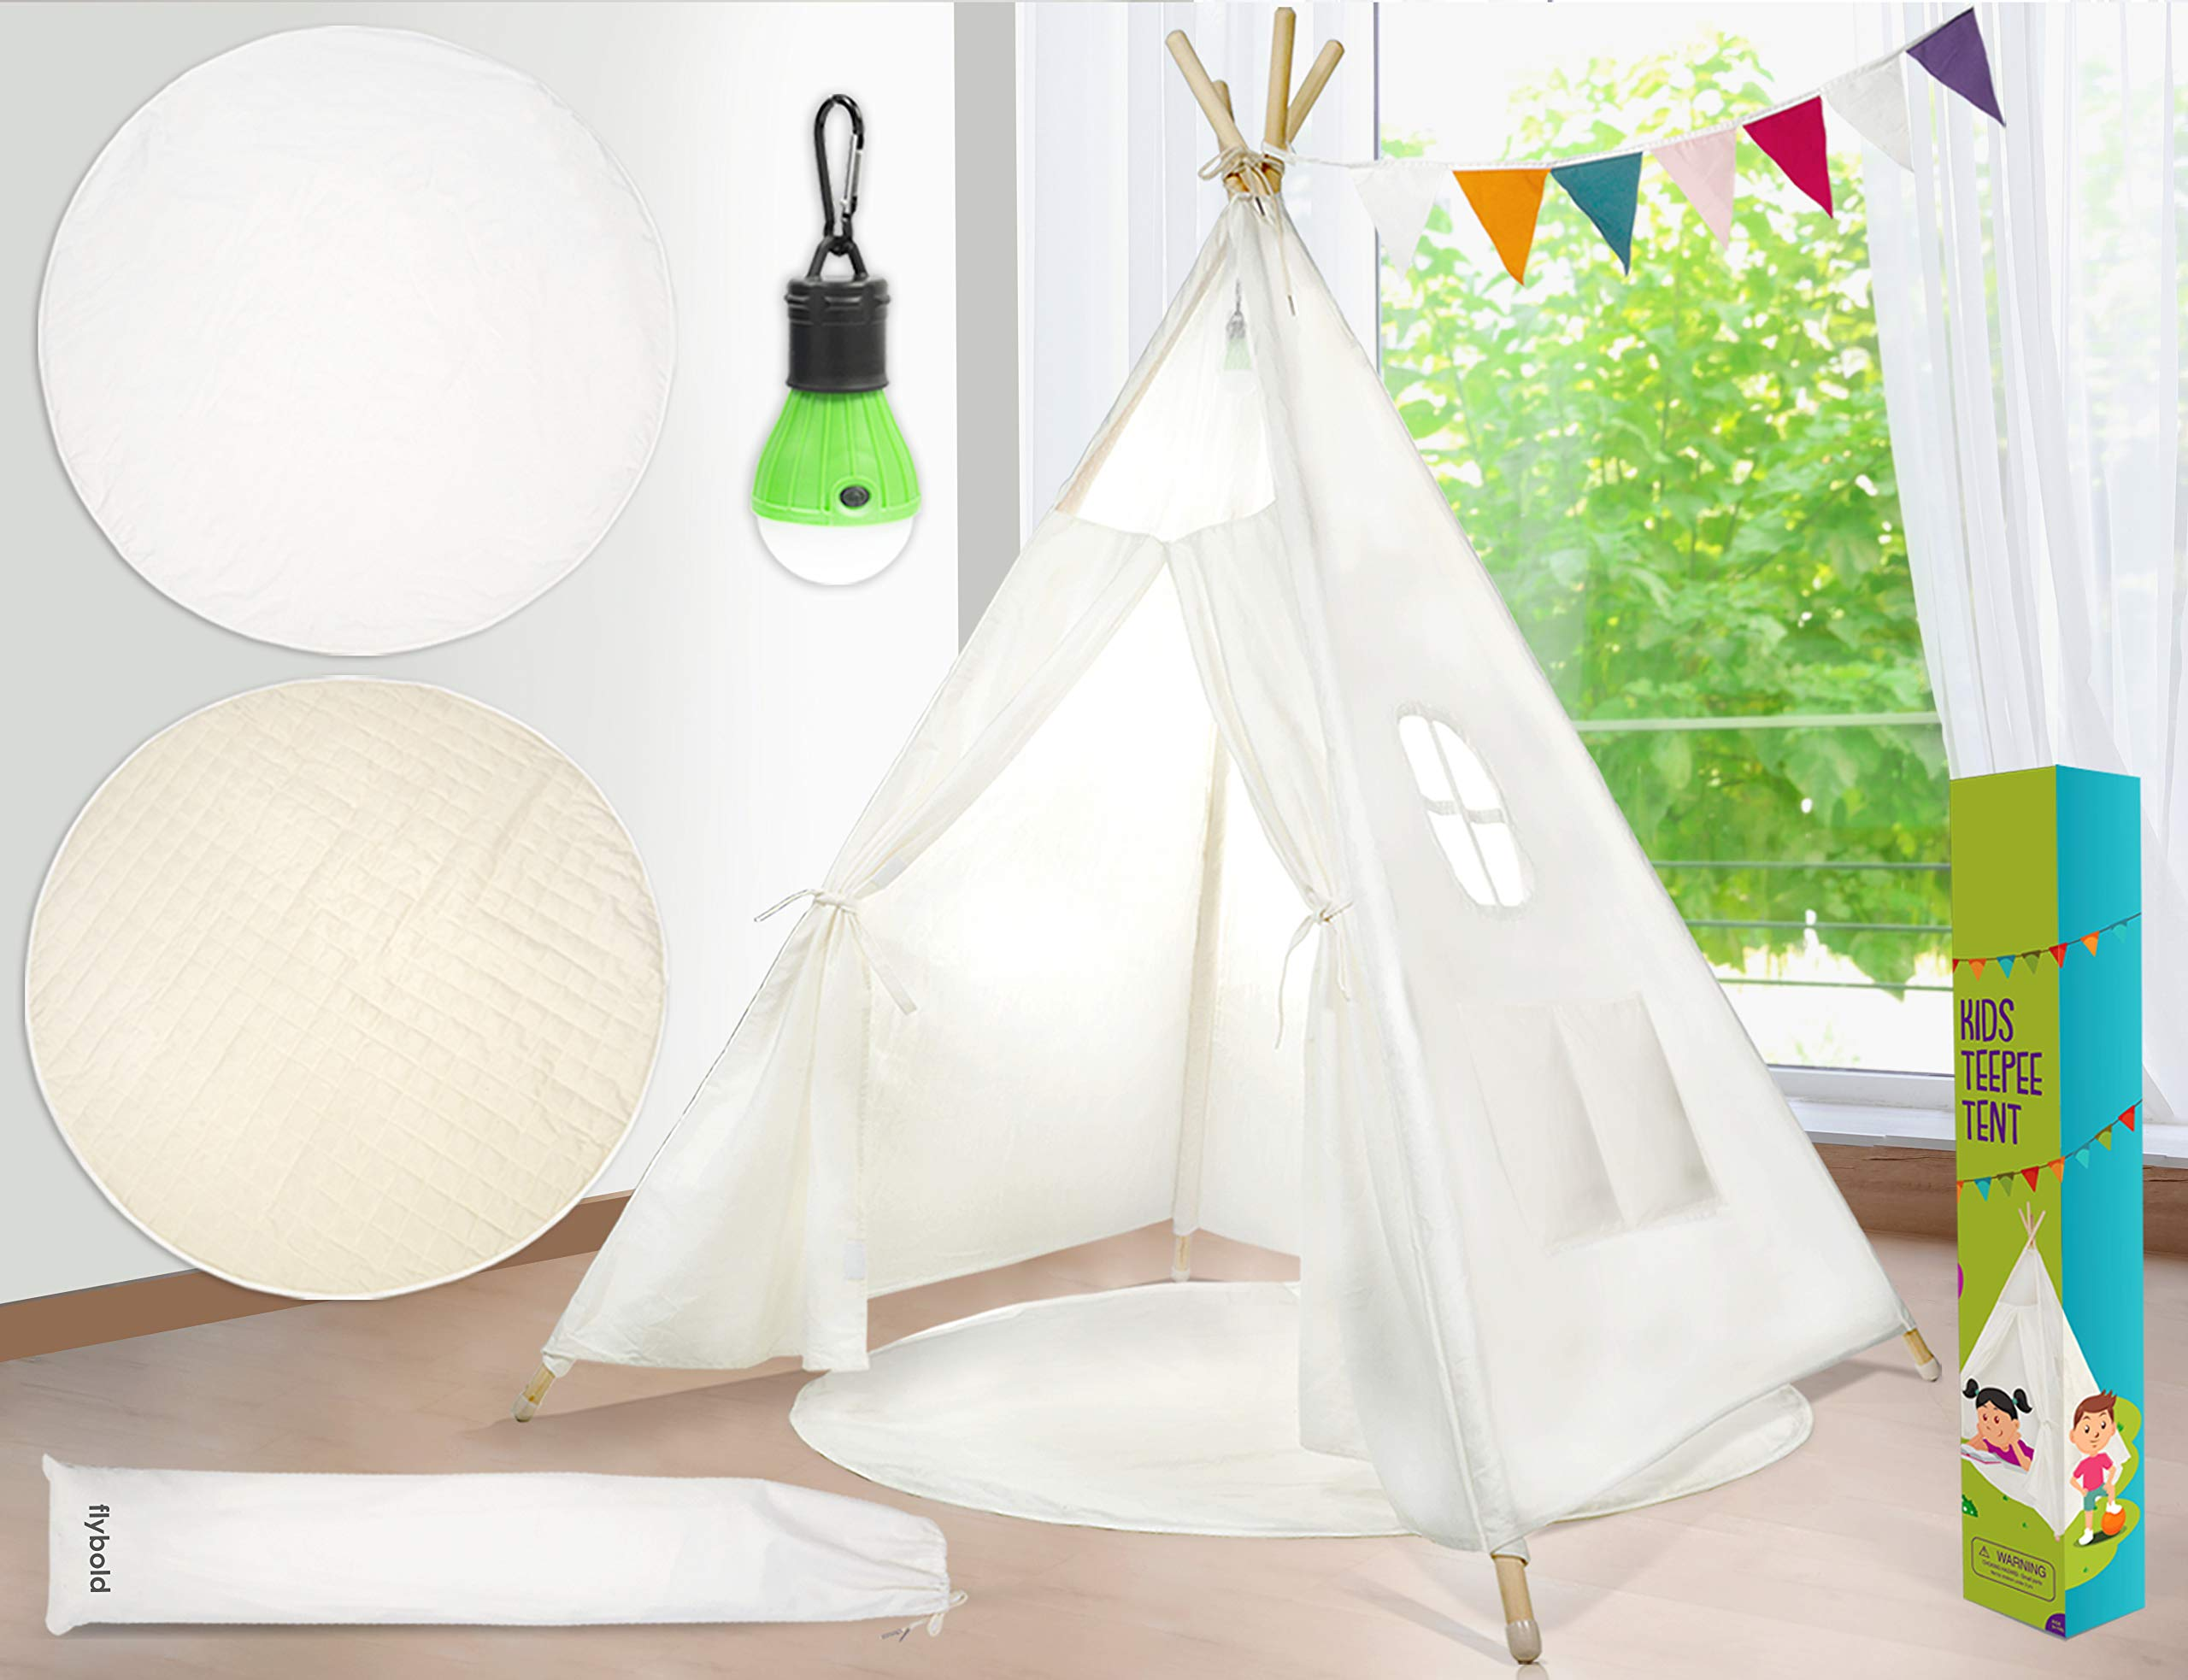 Kids Teepee Tent Children Play Tent 5 ft Raw White Cotton Canvas Four Wooden Poles Thick Cushion Mat LED Light Banner Carry Case Indoor Outdoor Playhouse for Girls and Boys Childrens Room Decor by flybold (Image #1)